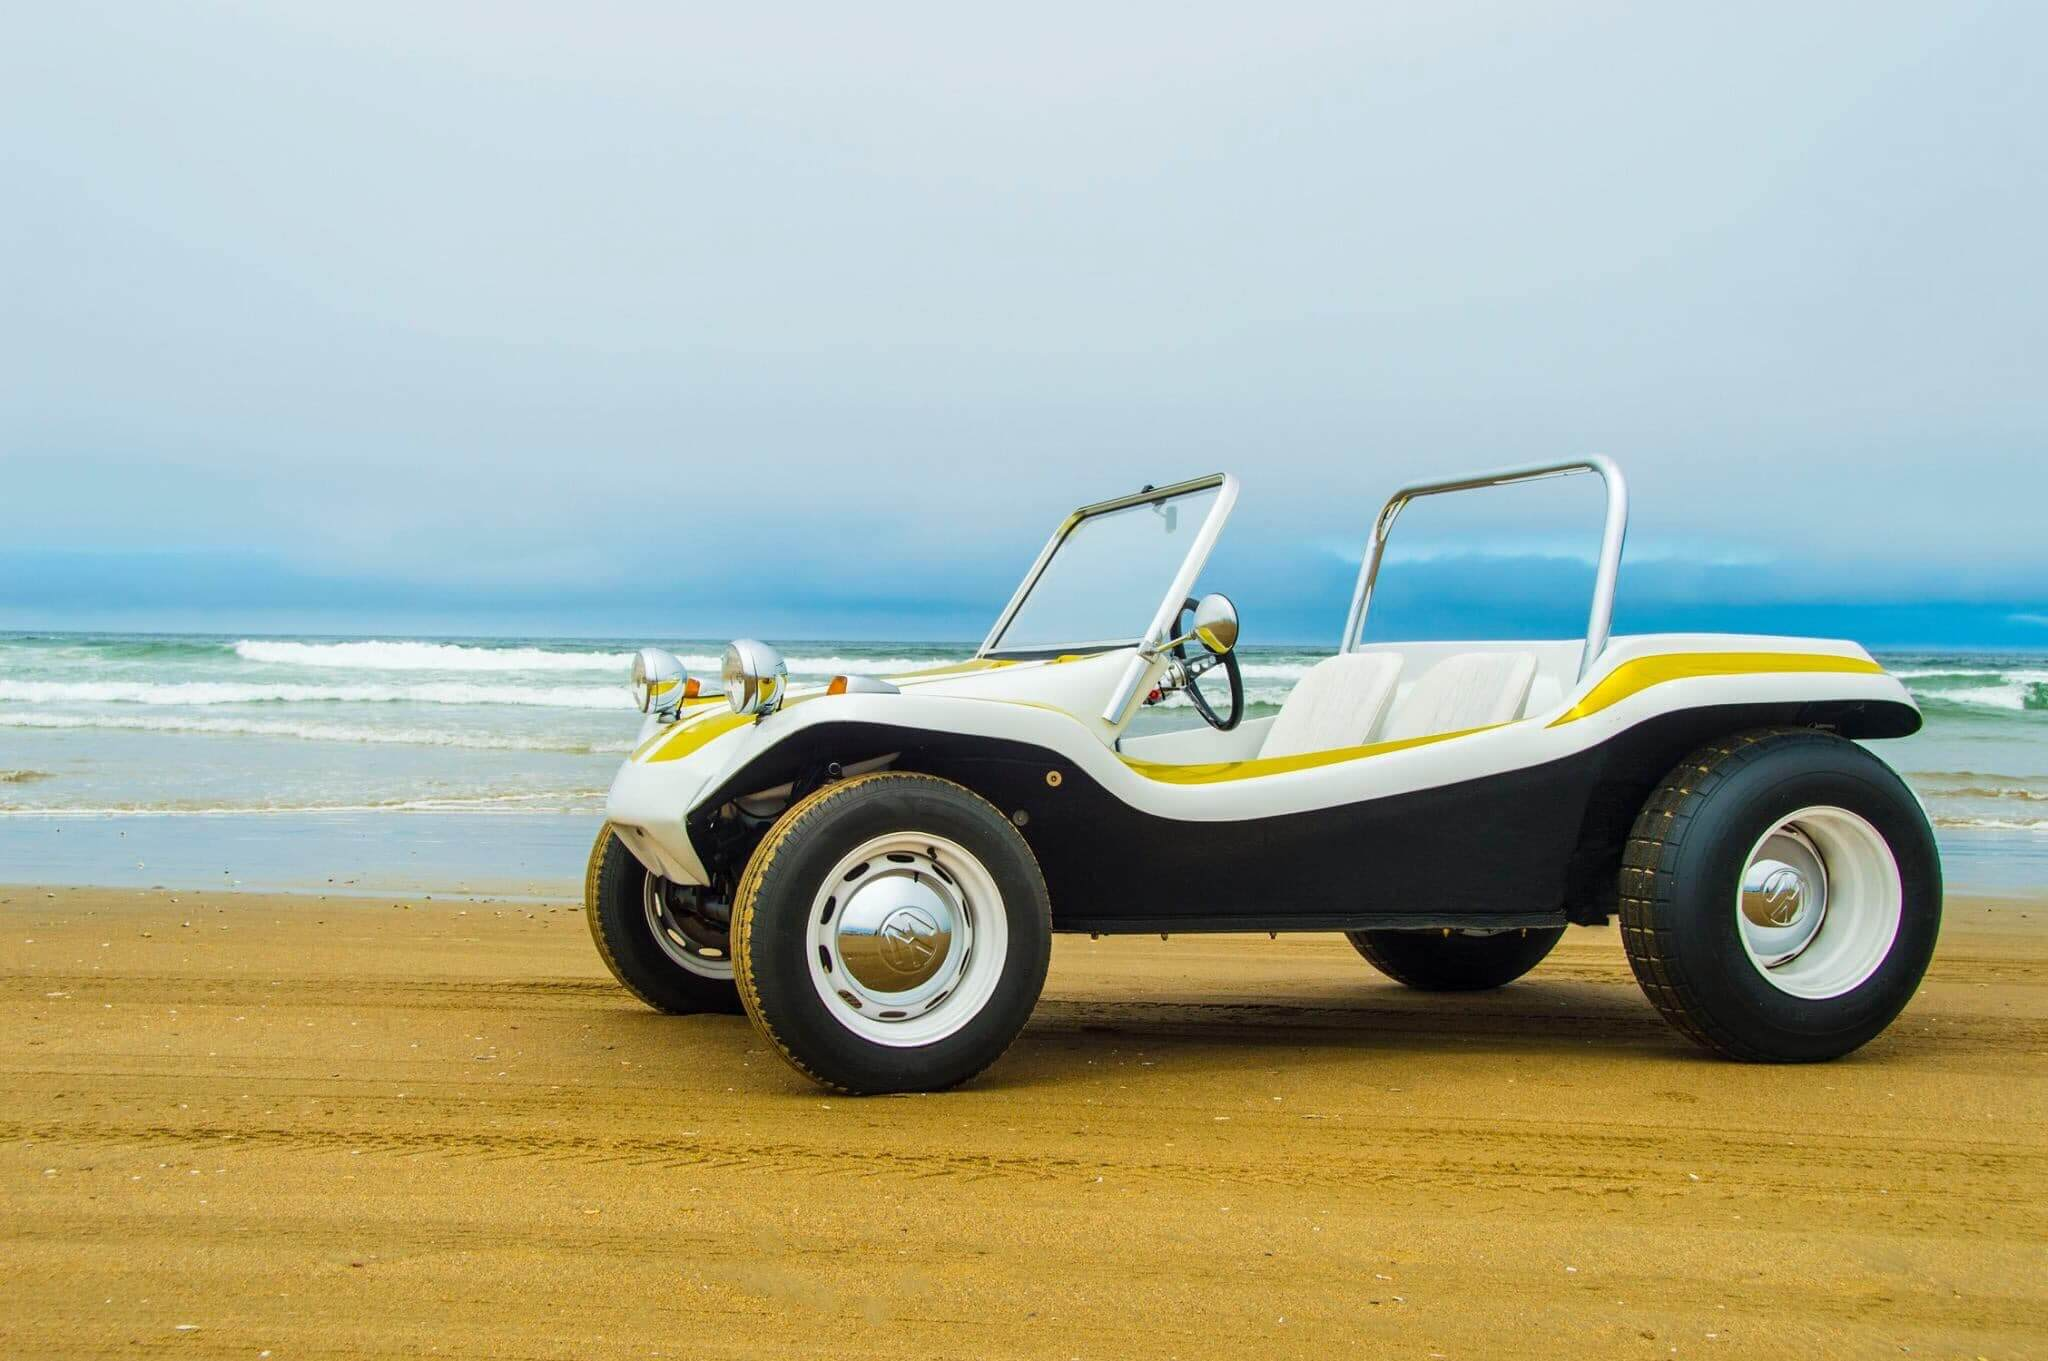 Dune Buggy at Pismo Beach